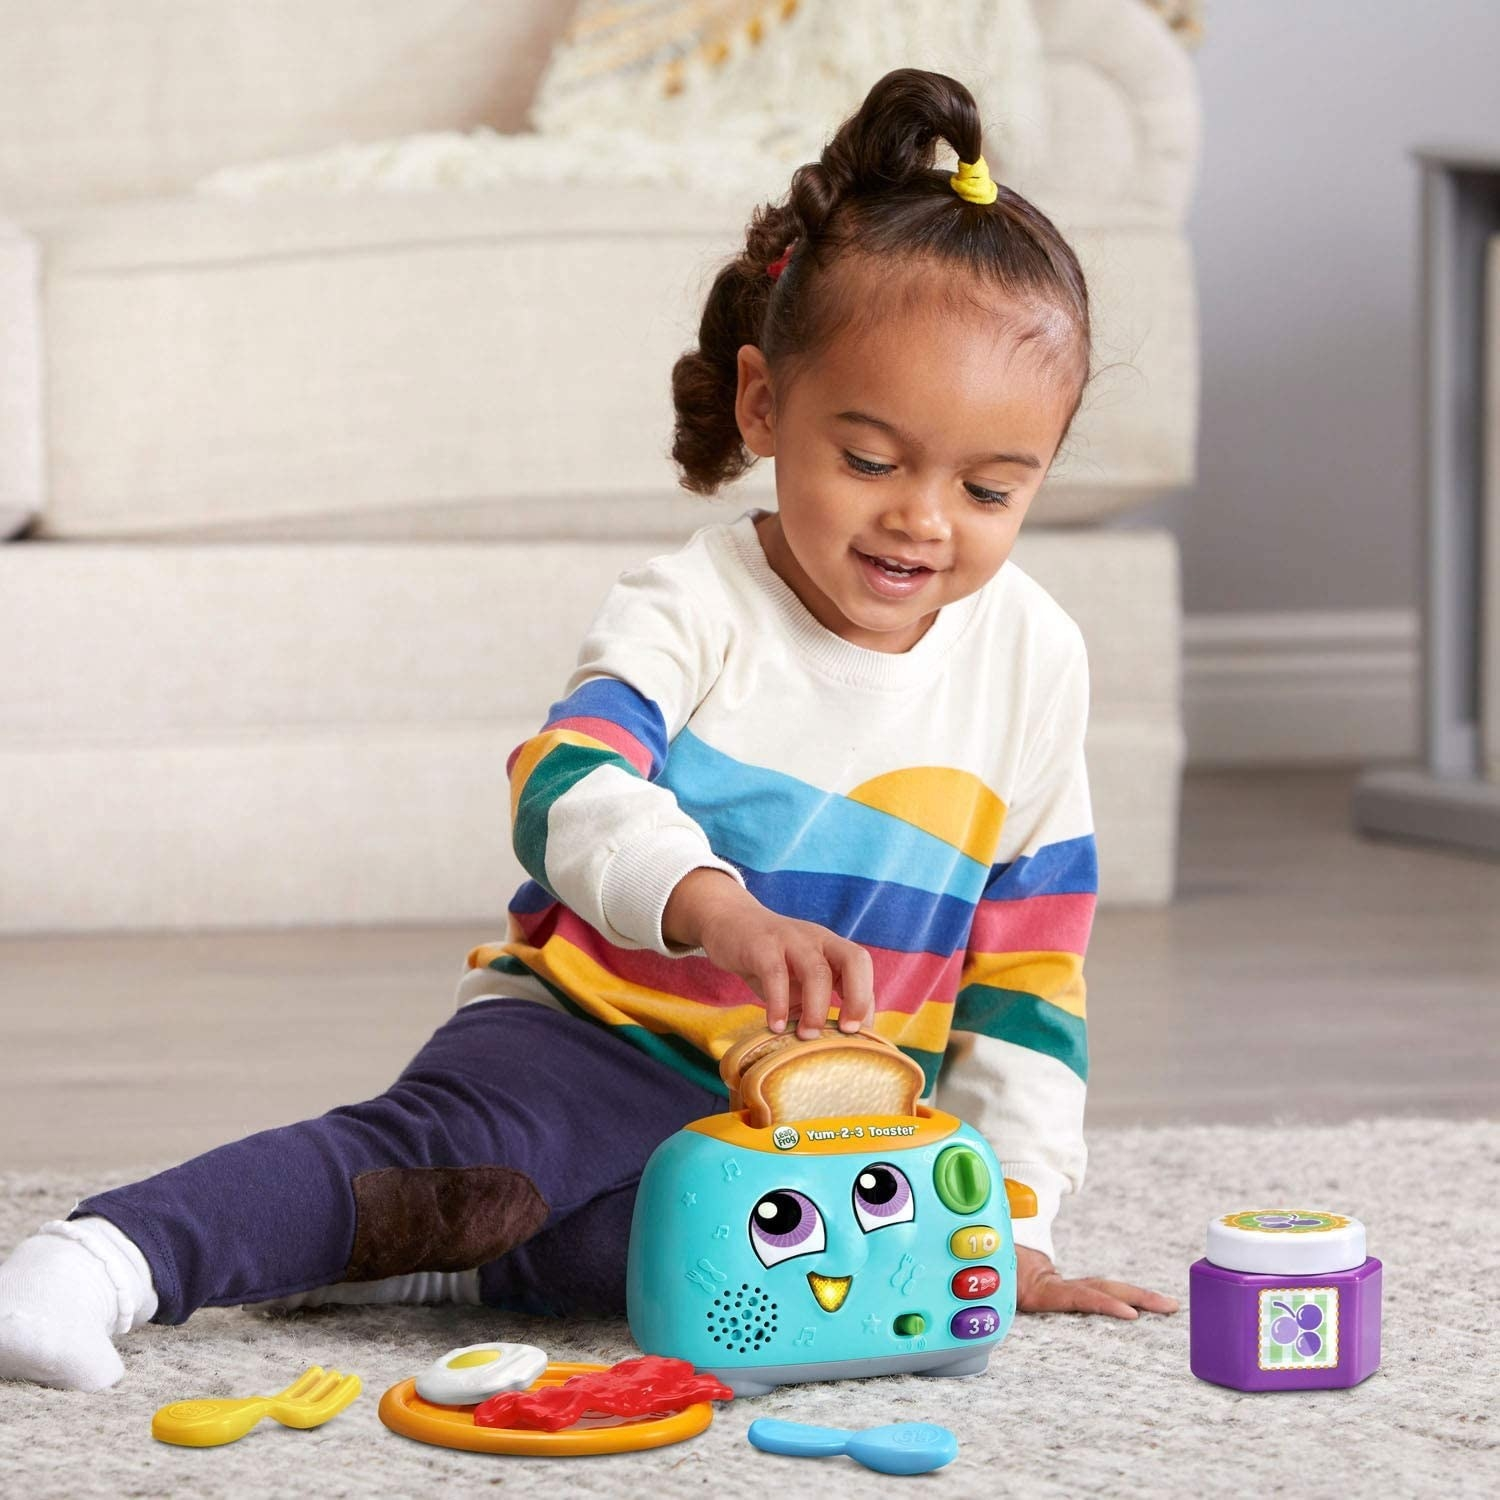 Child model playing with toaster toy